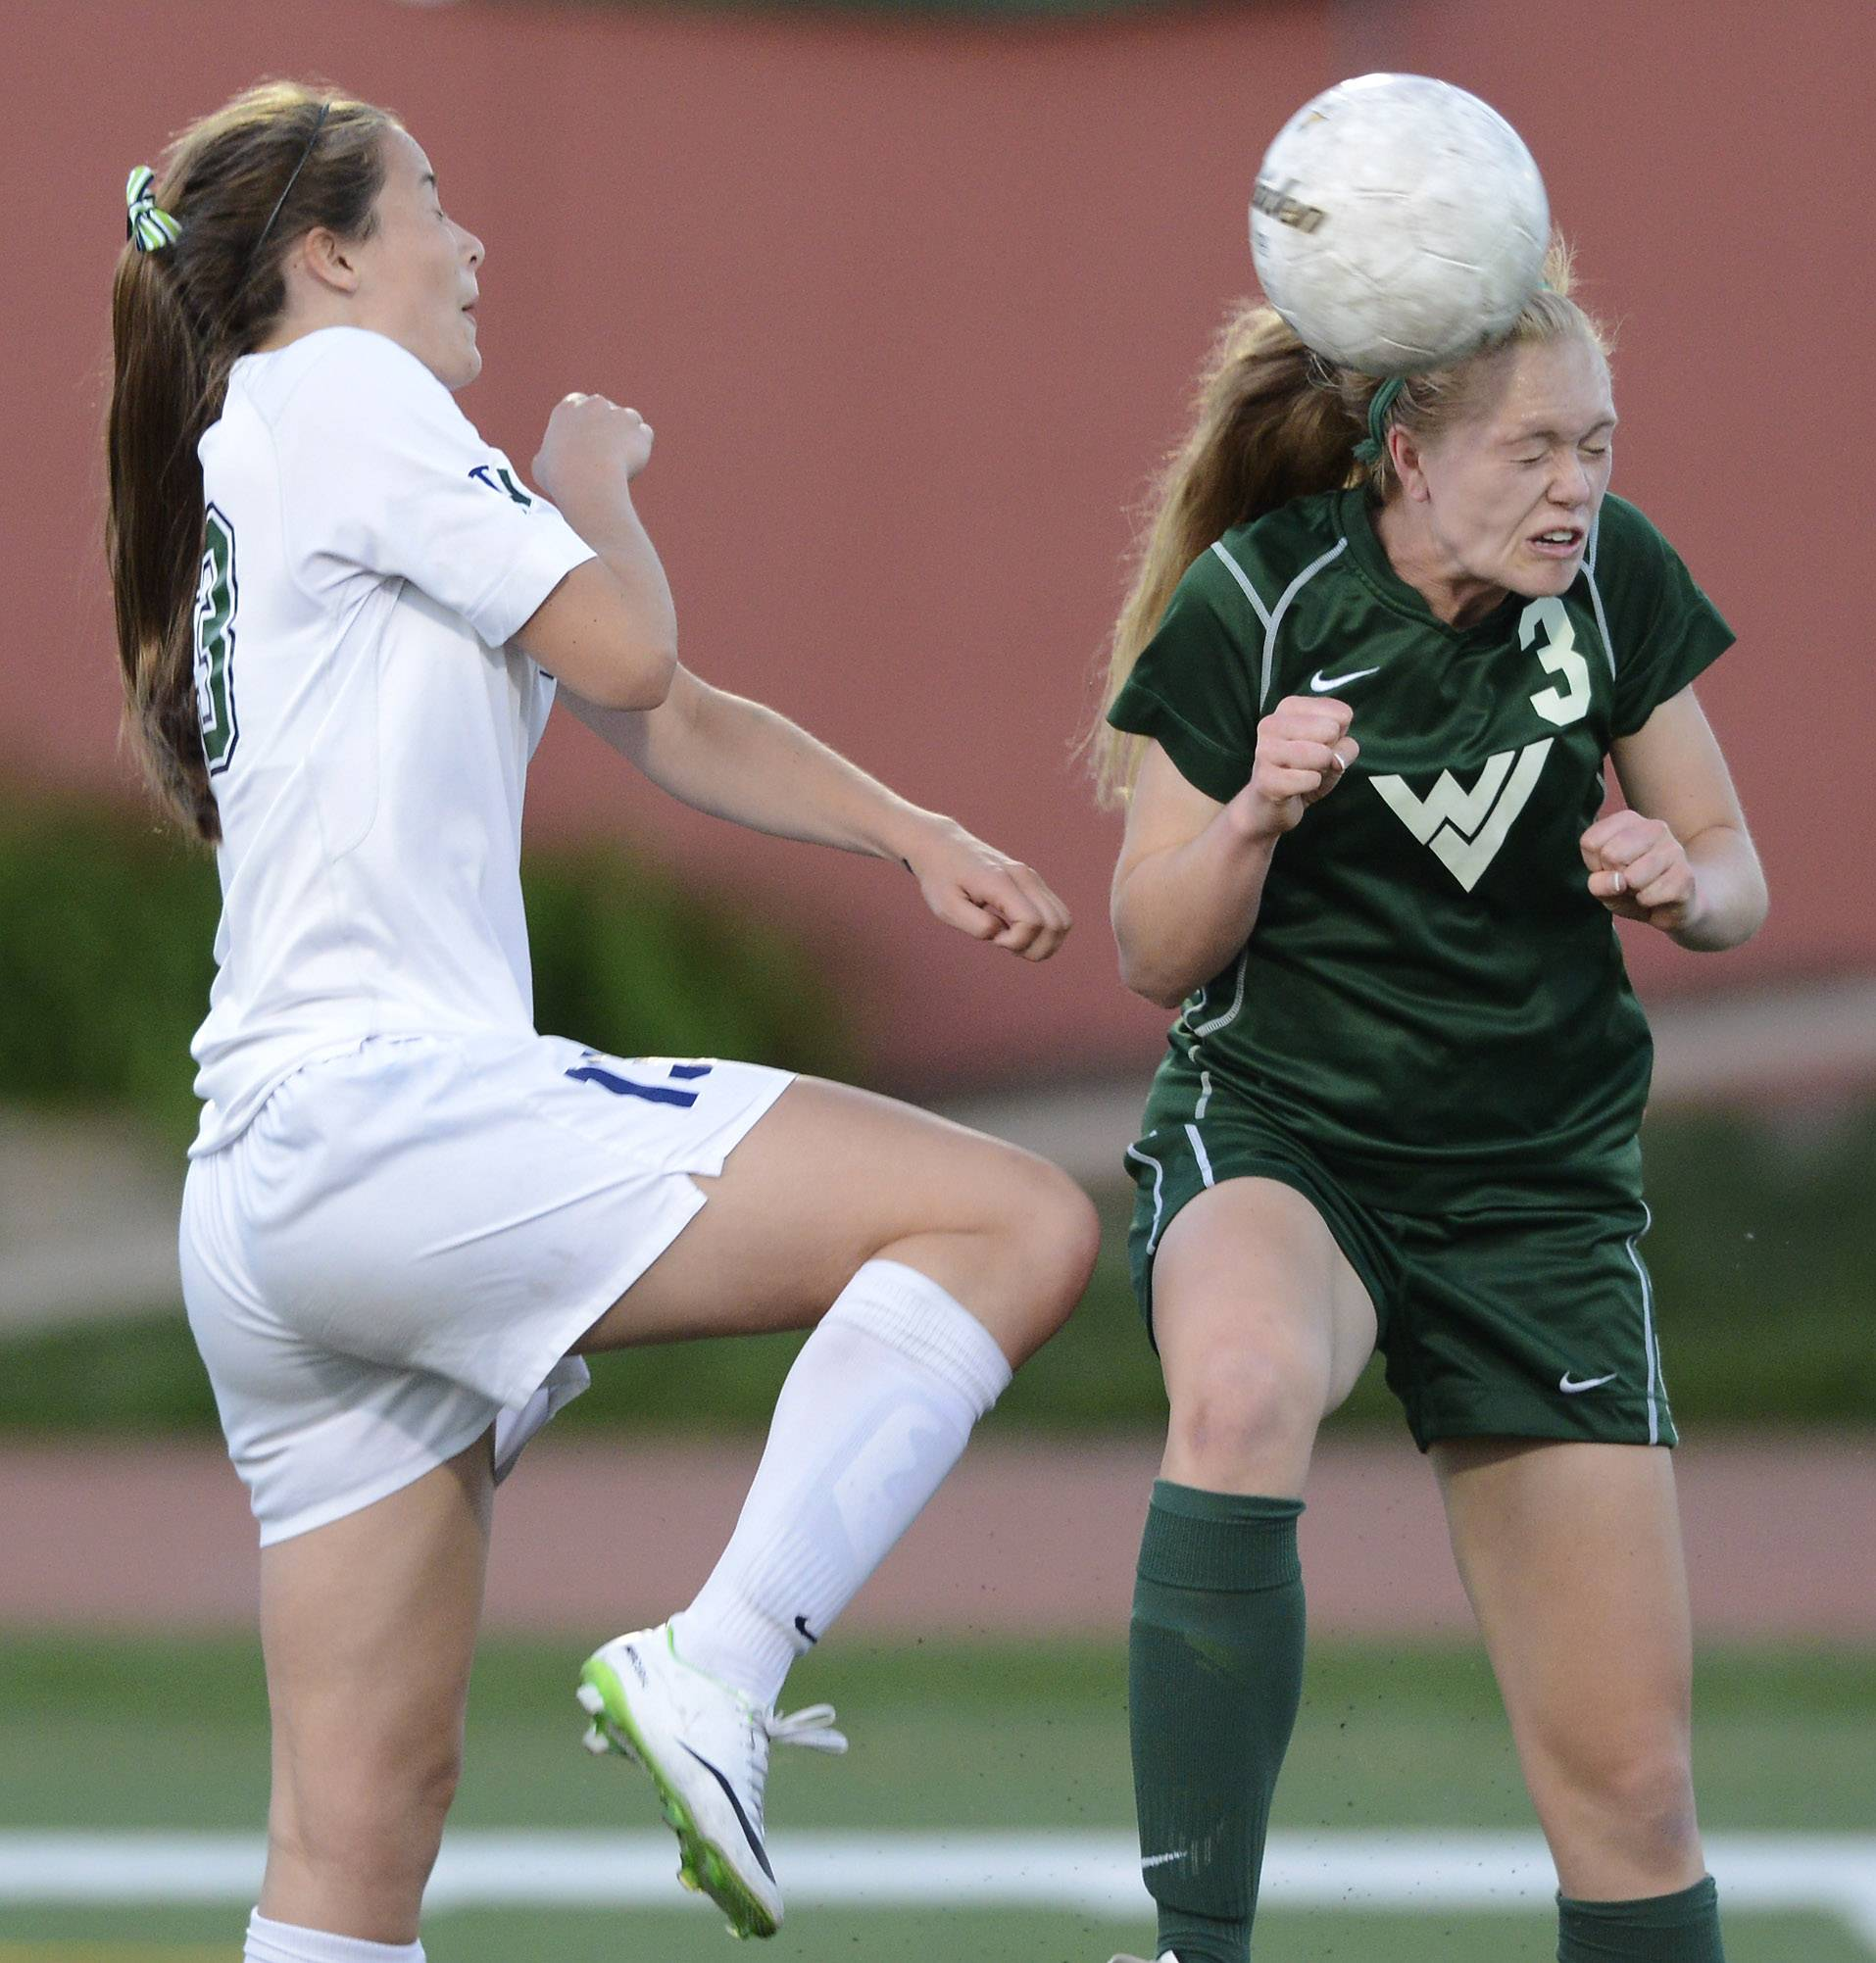 Waubonsie Valley's Morgan Kemerling, right, directs the ball with a header in front of New Trier's Jackie Welch during the girls soccer Class 3A state semifinal at North Central College in Naperville Friday.